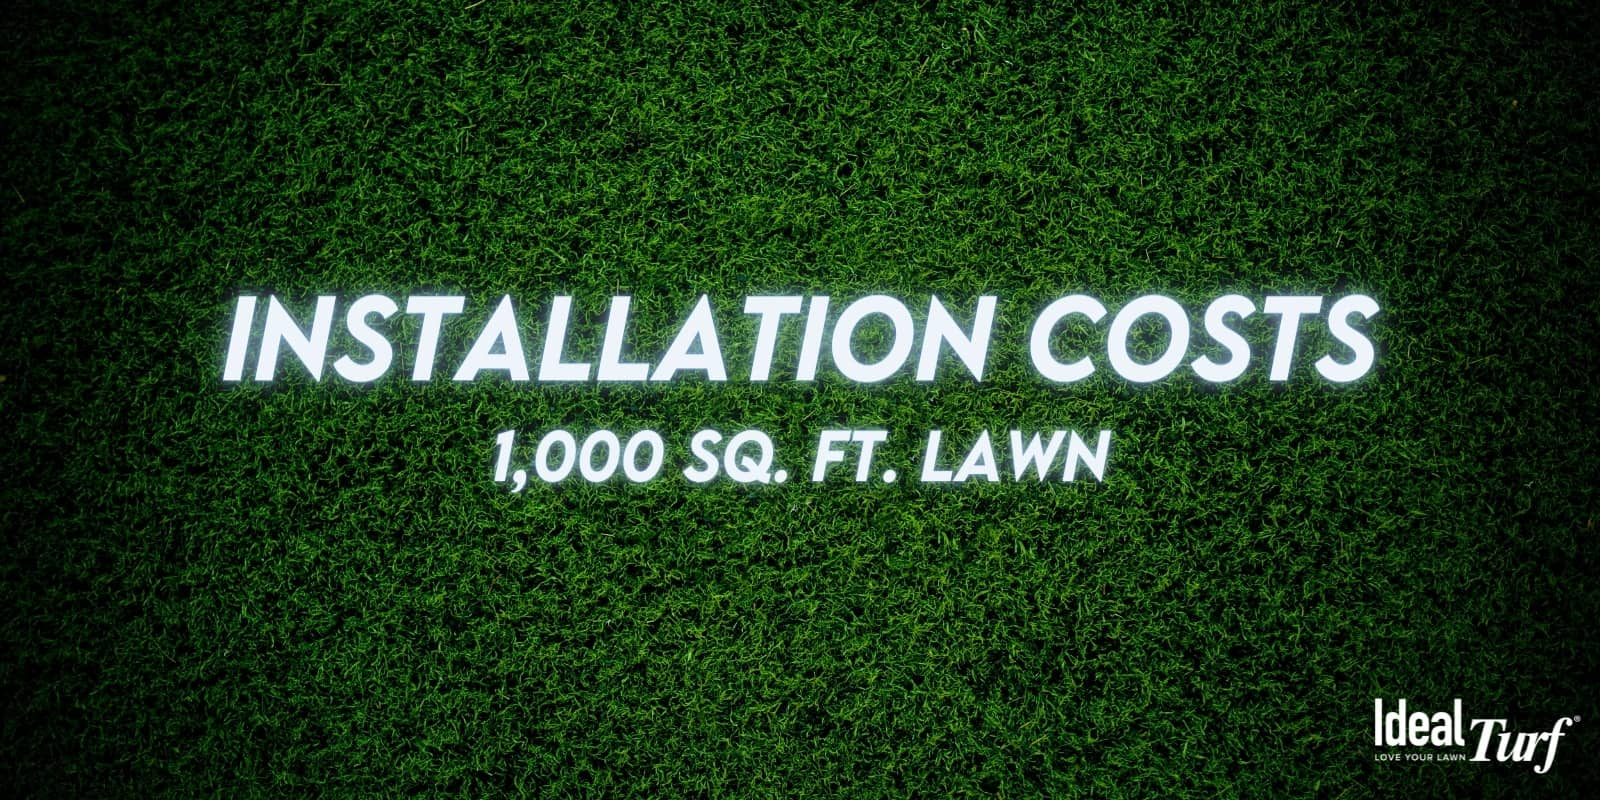 Installation Costs for 1,000 sq. ft. lawn